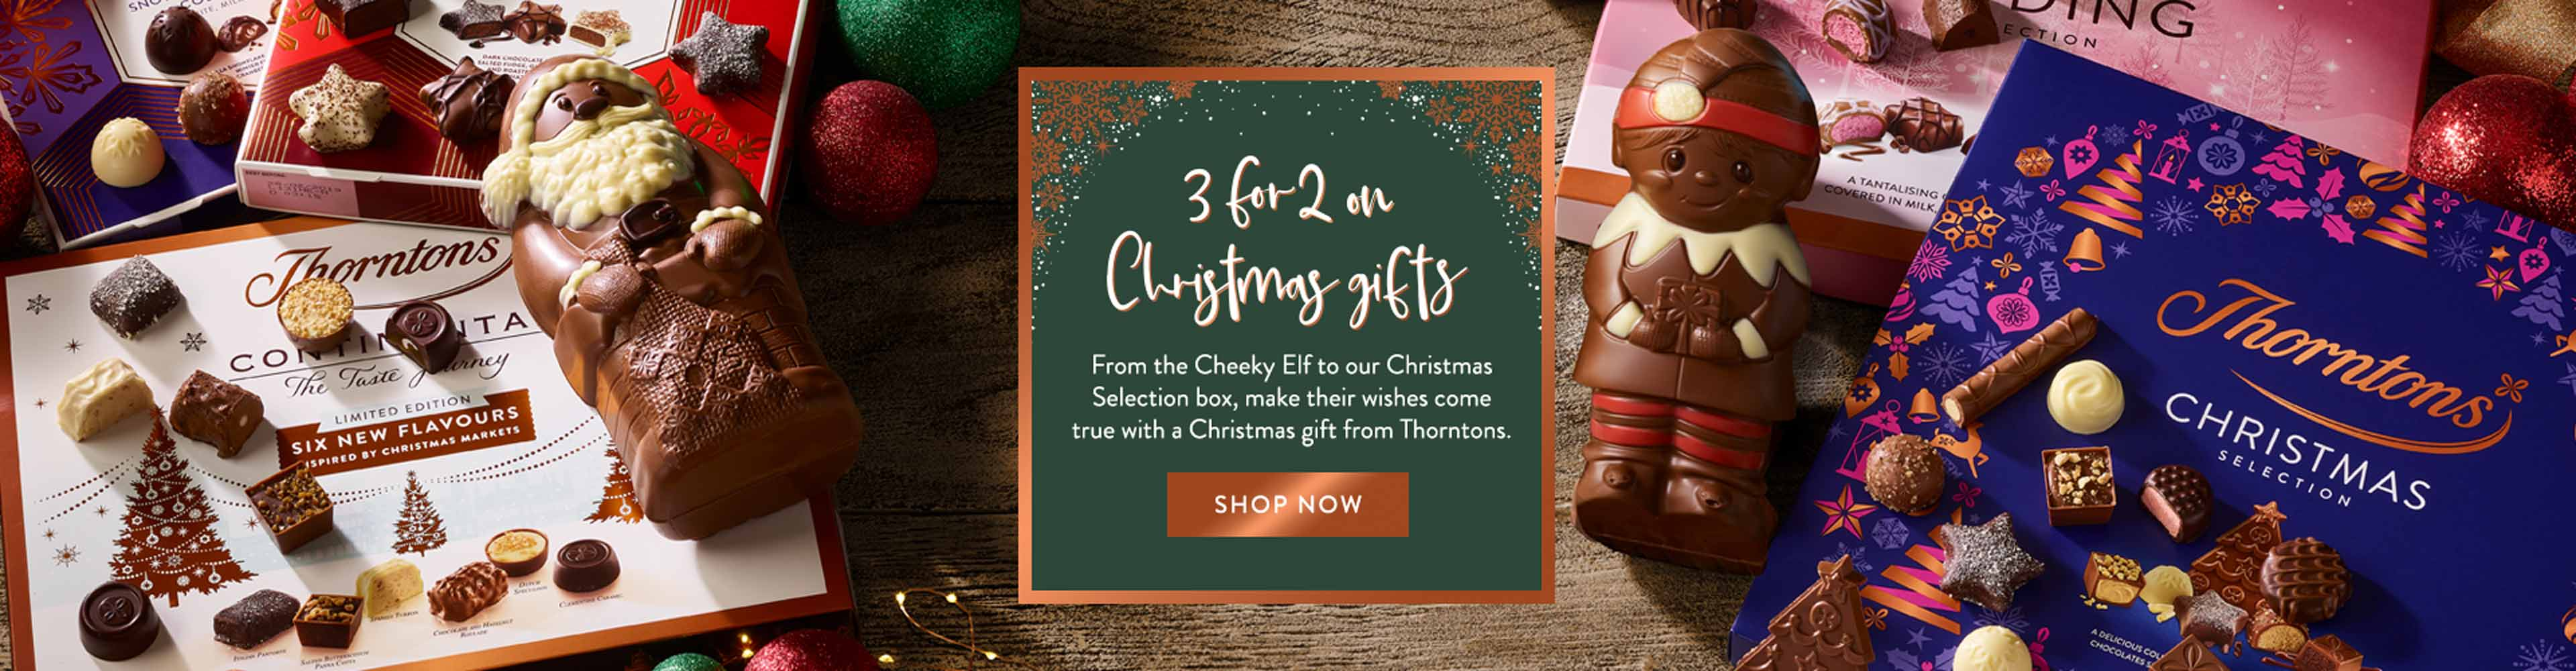 From the Cheeky Elf to our Christmas Selection box, make their Christmas wishes come true with a Christmas gift